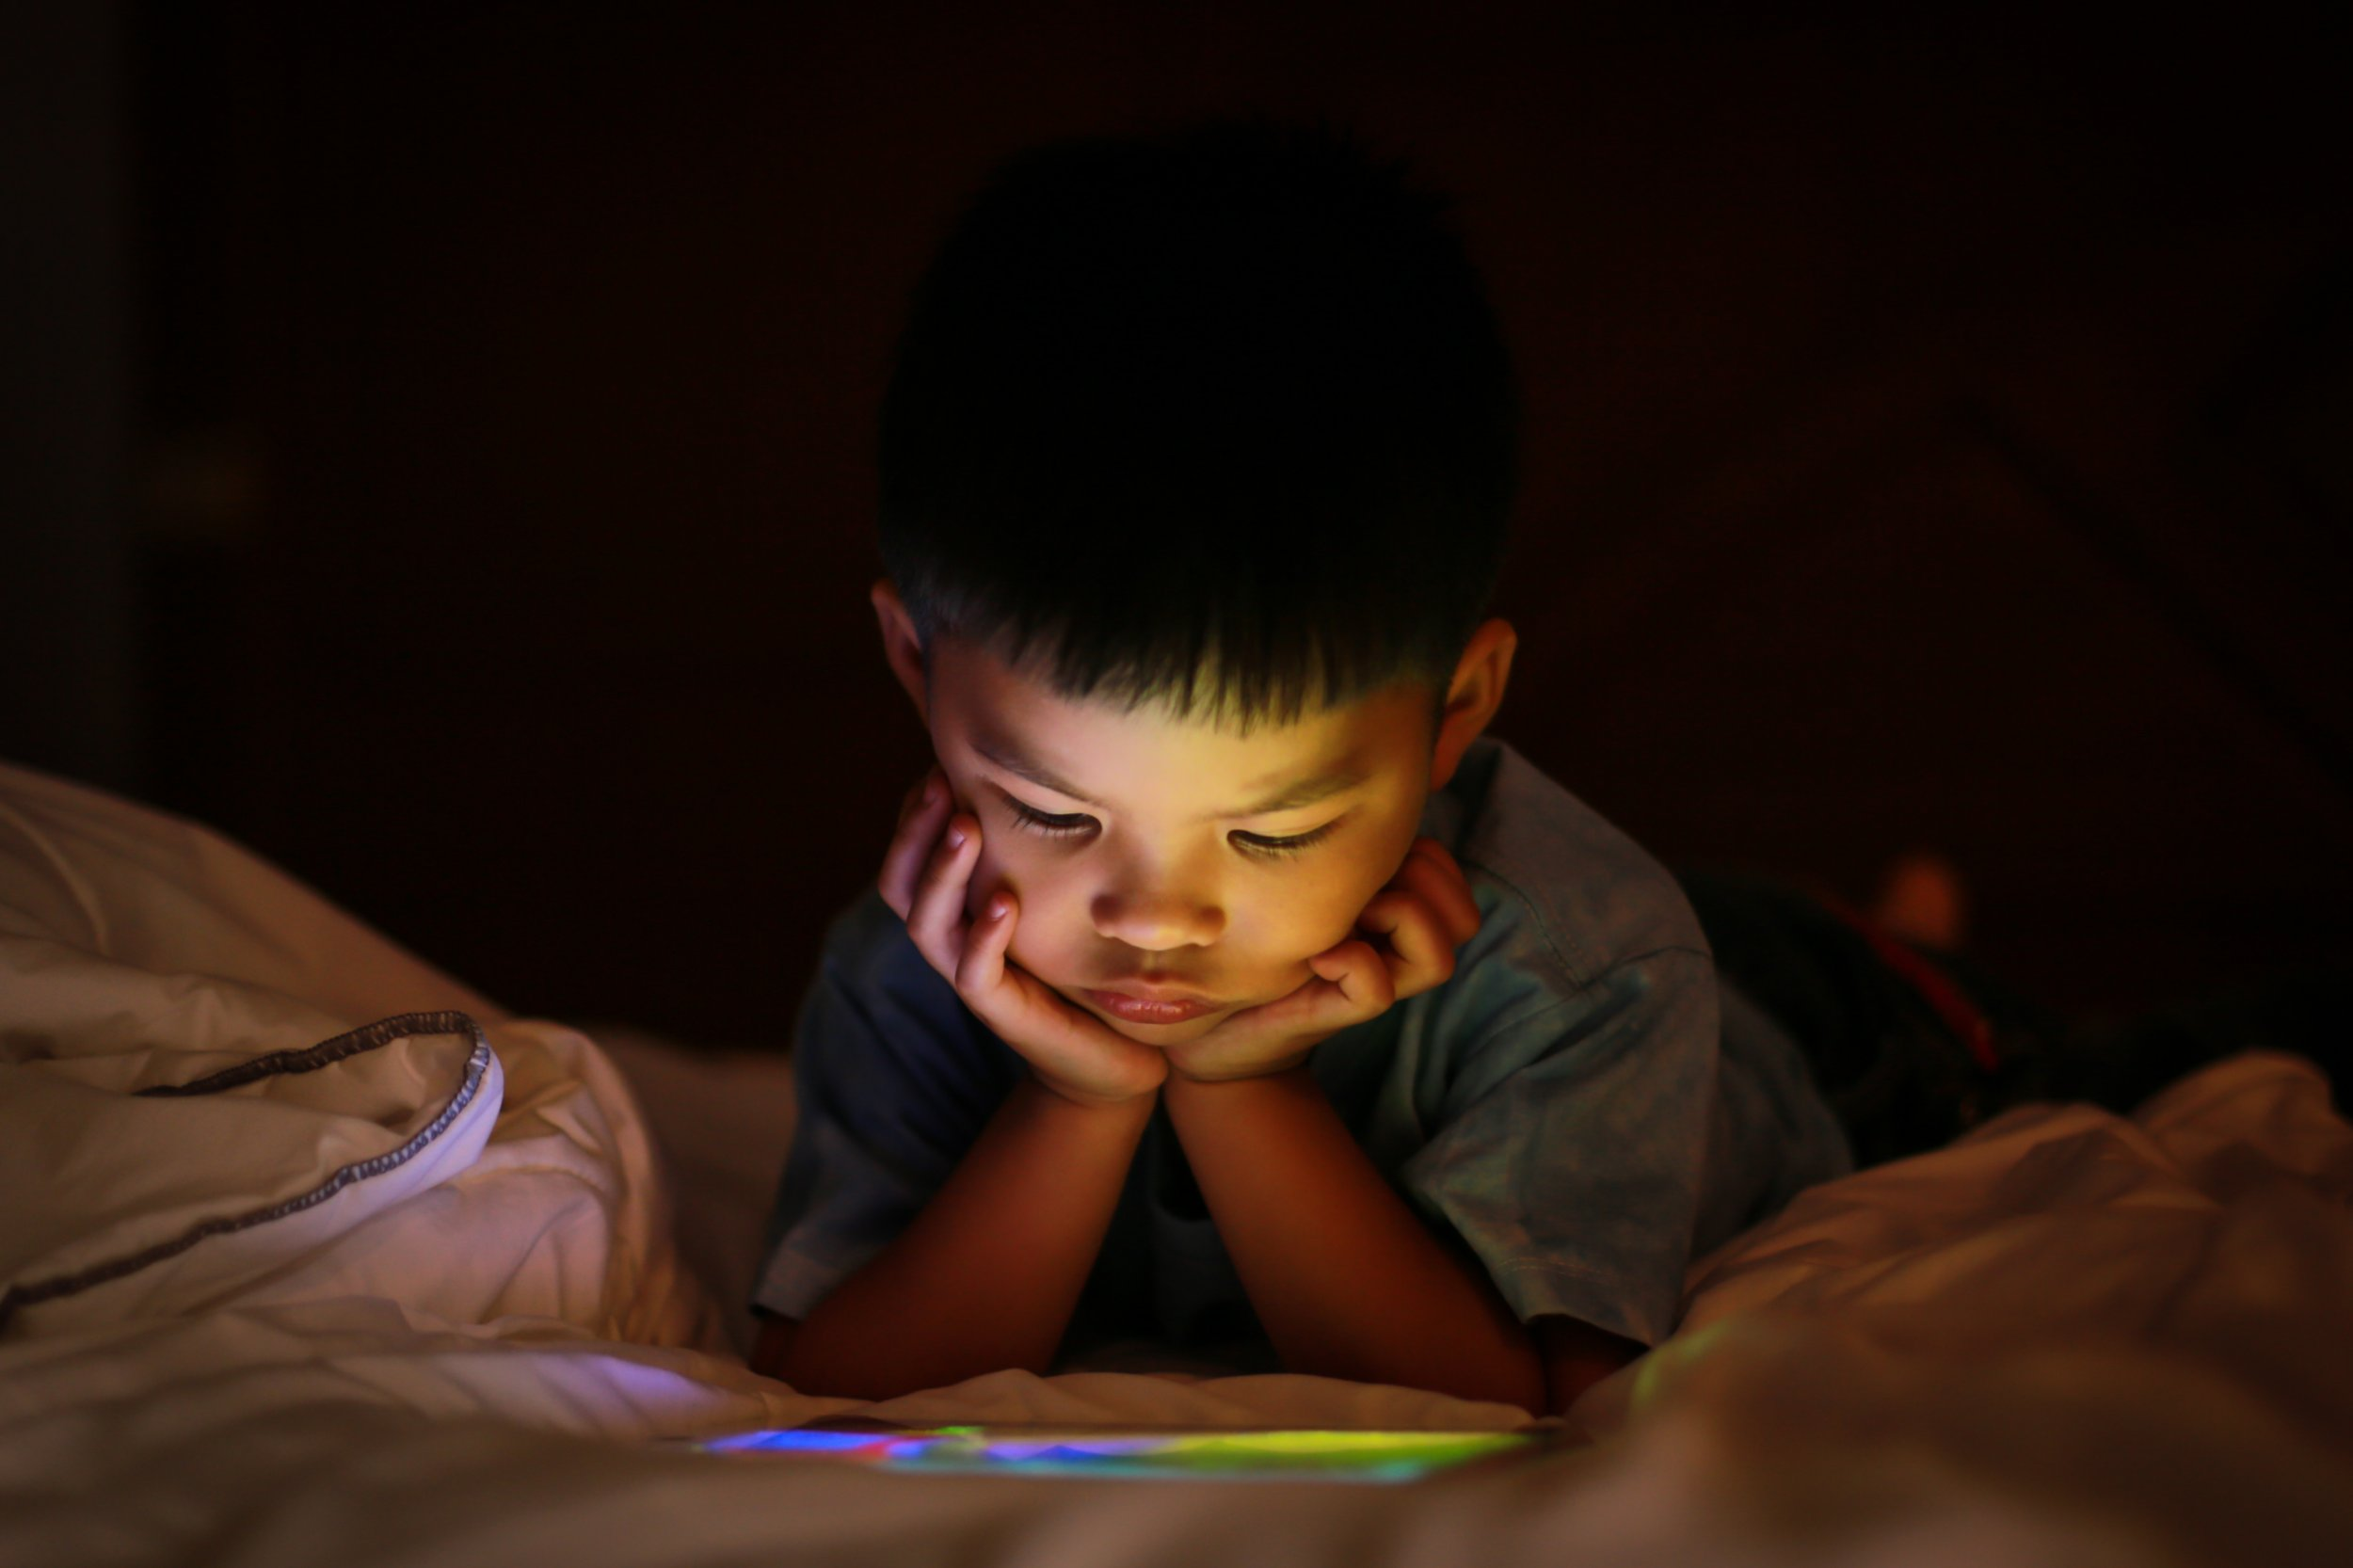 Adhd Linked To Delayed Development Of >> How Much Screen Time Is Too Much Over Two Hours Per Day Linked With